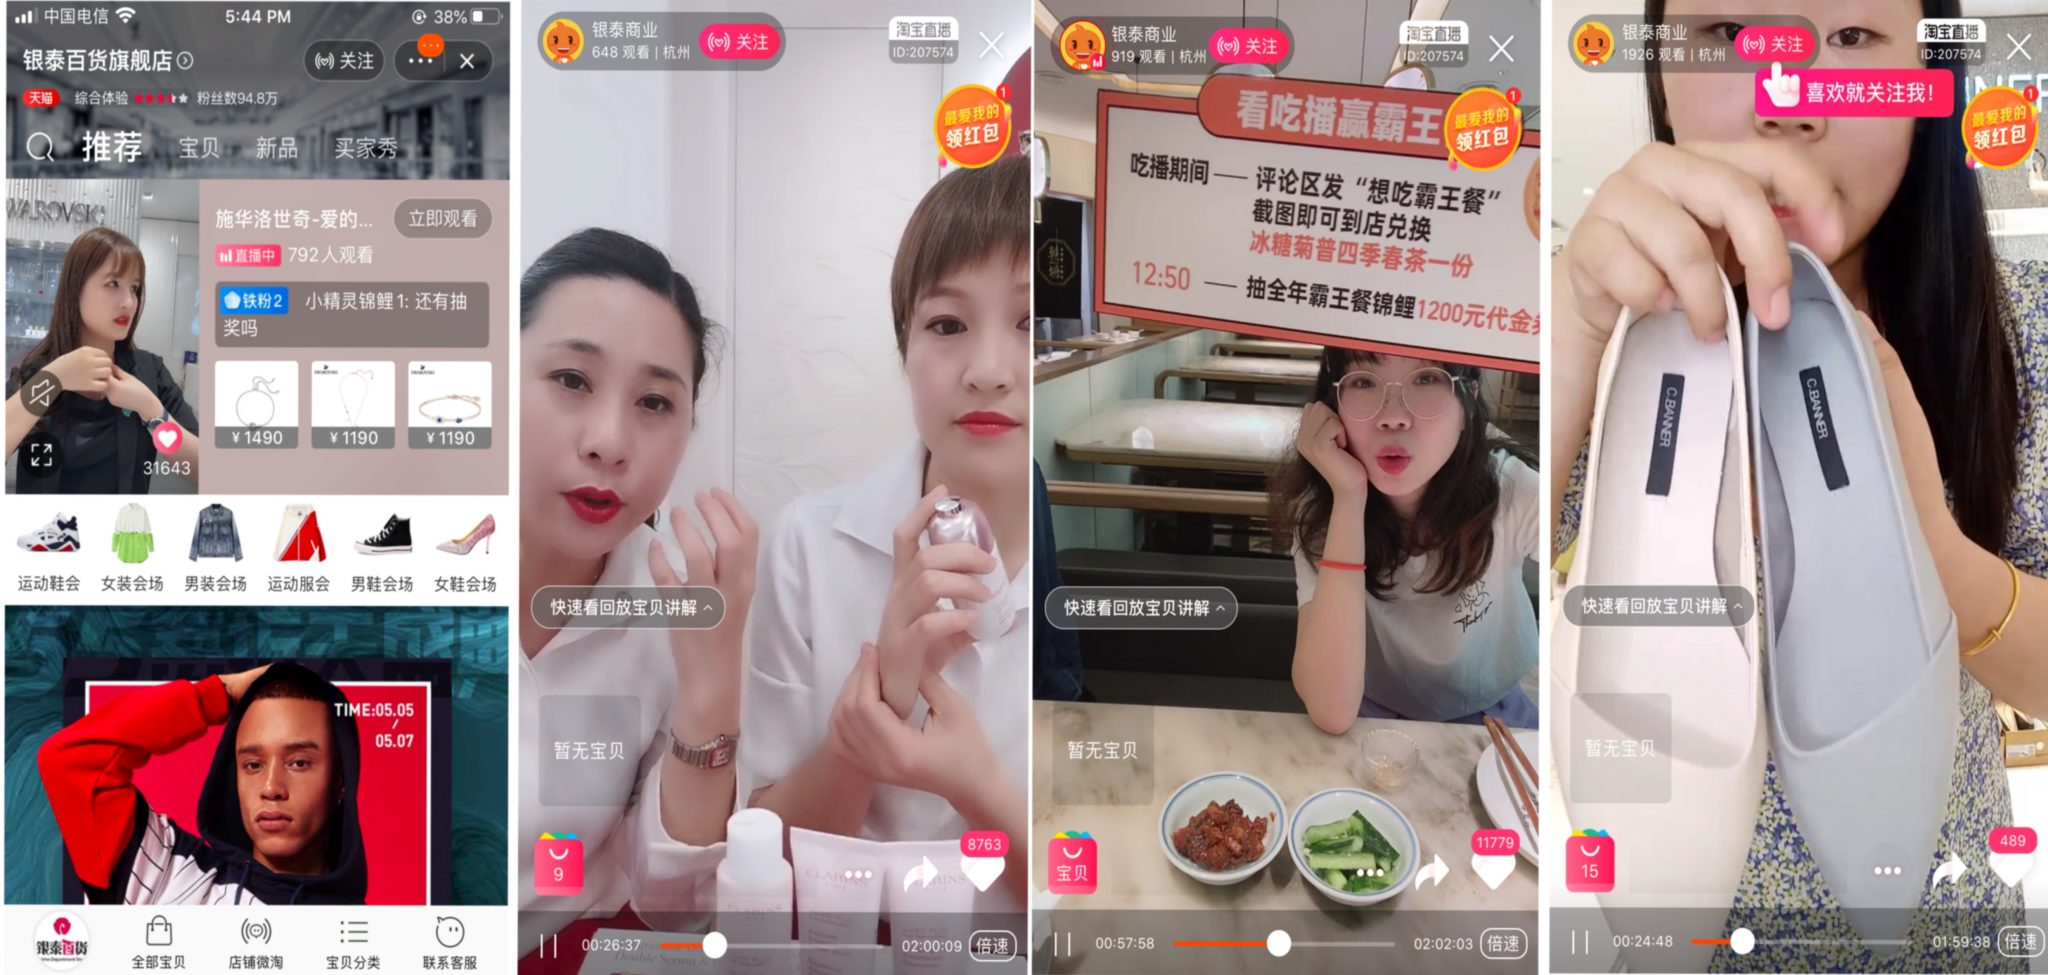 Screenshots of Intime's live streaming on Taobao Live.